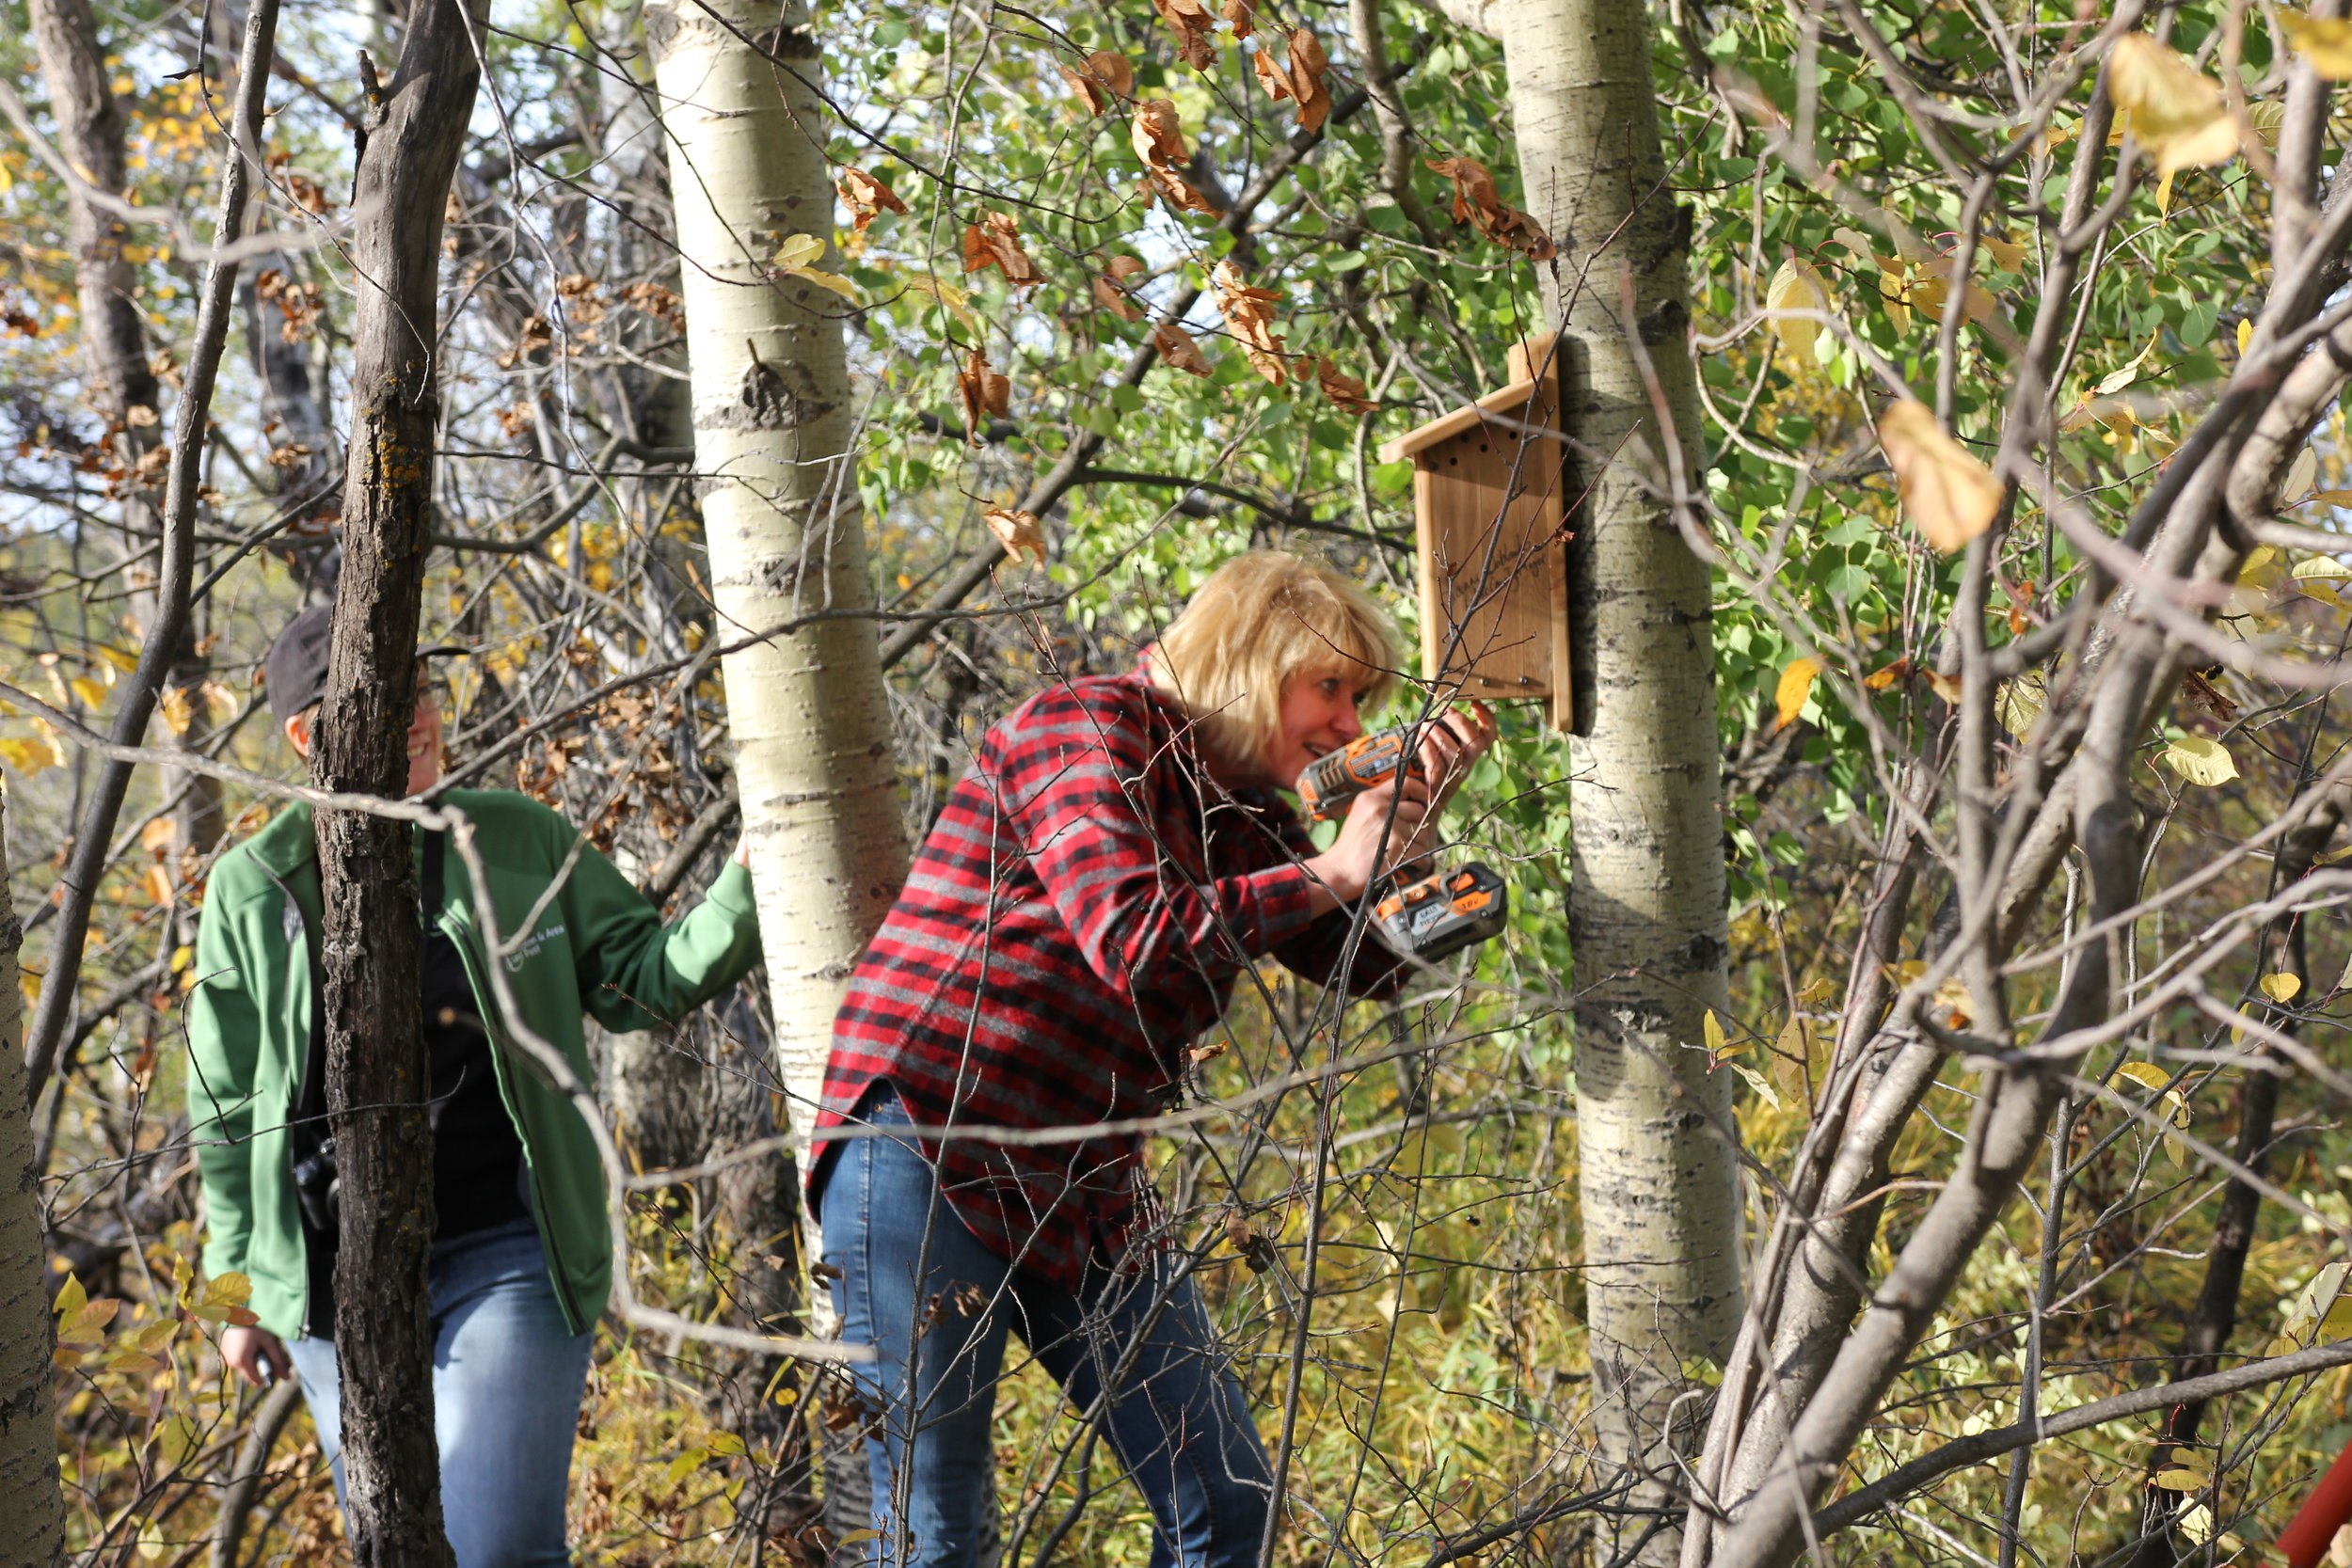 Mayor of Leduc County installing a nest box at Coates